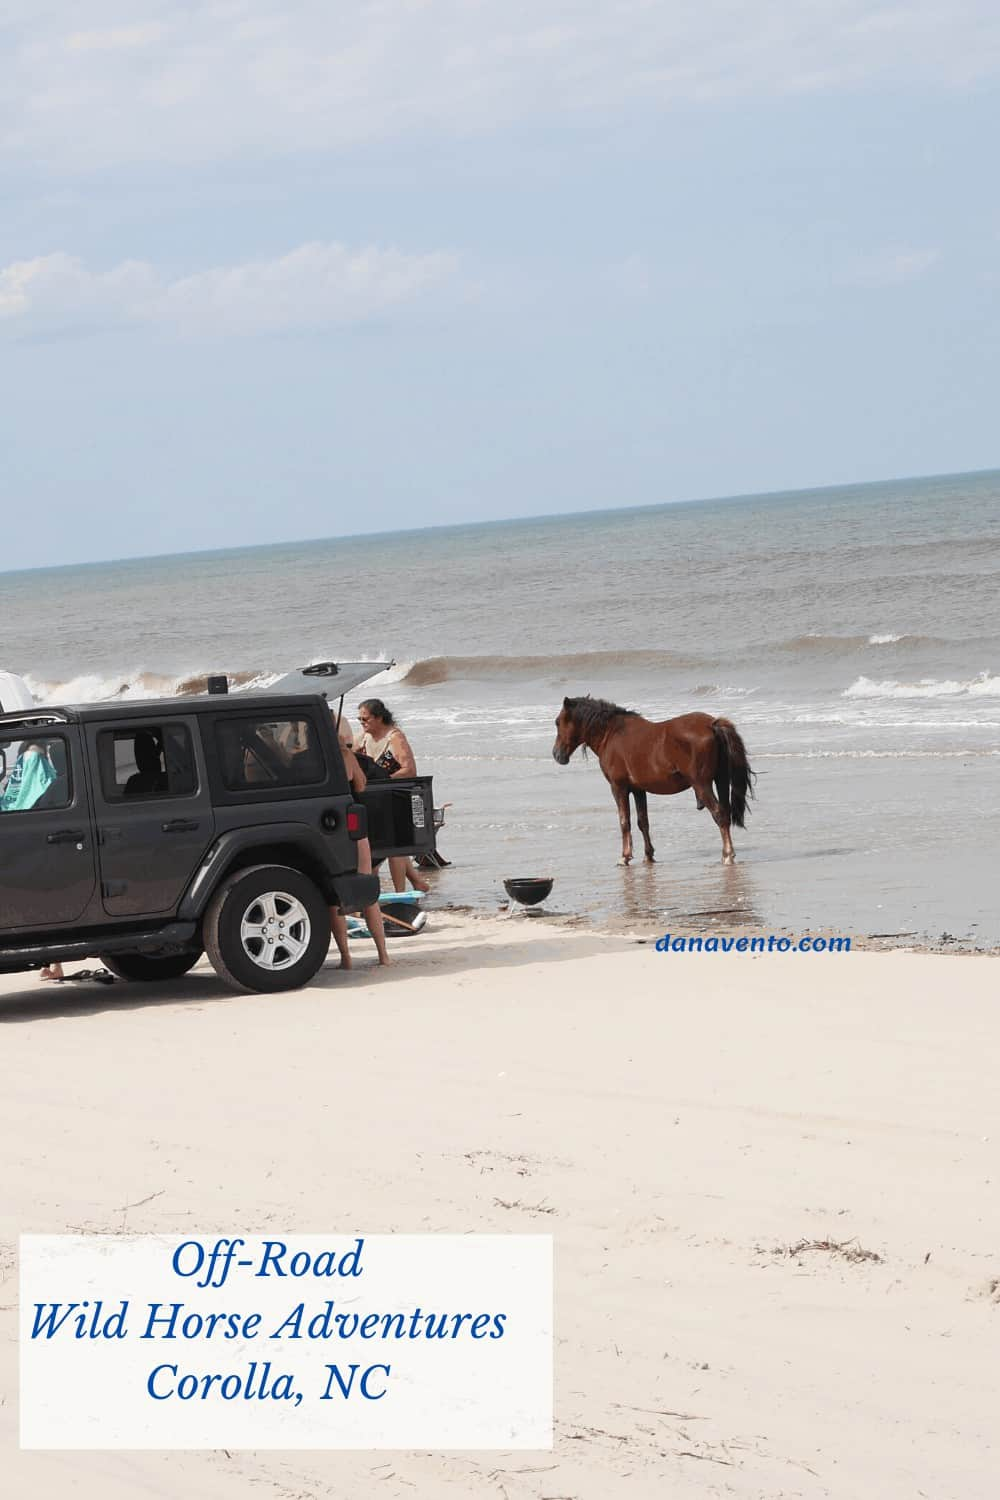 People closer than 50 feet from Spanish Colonial Mustang on Carova Beach in NC